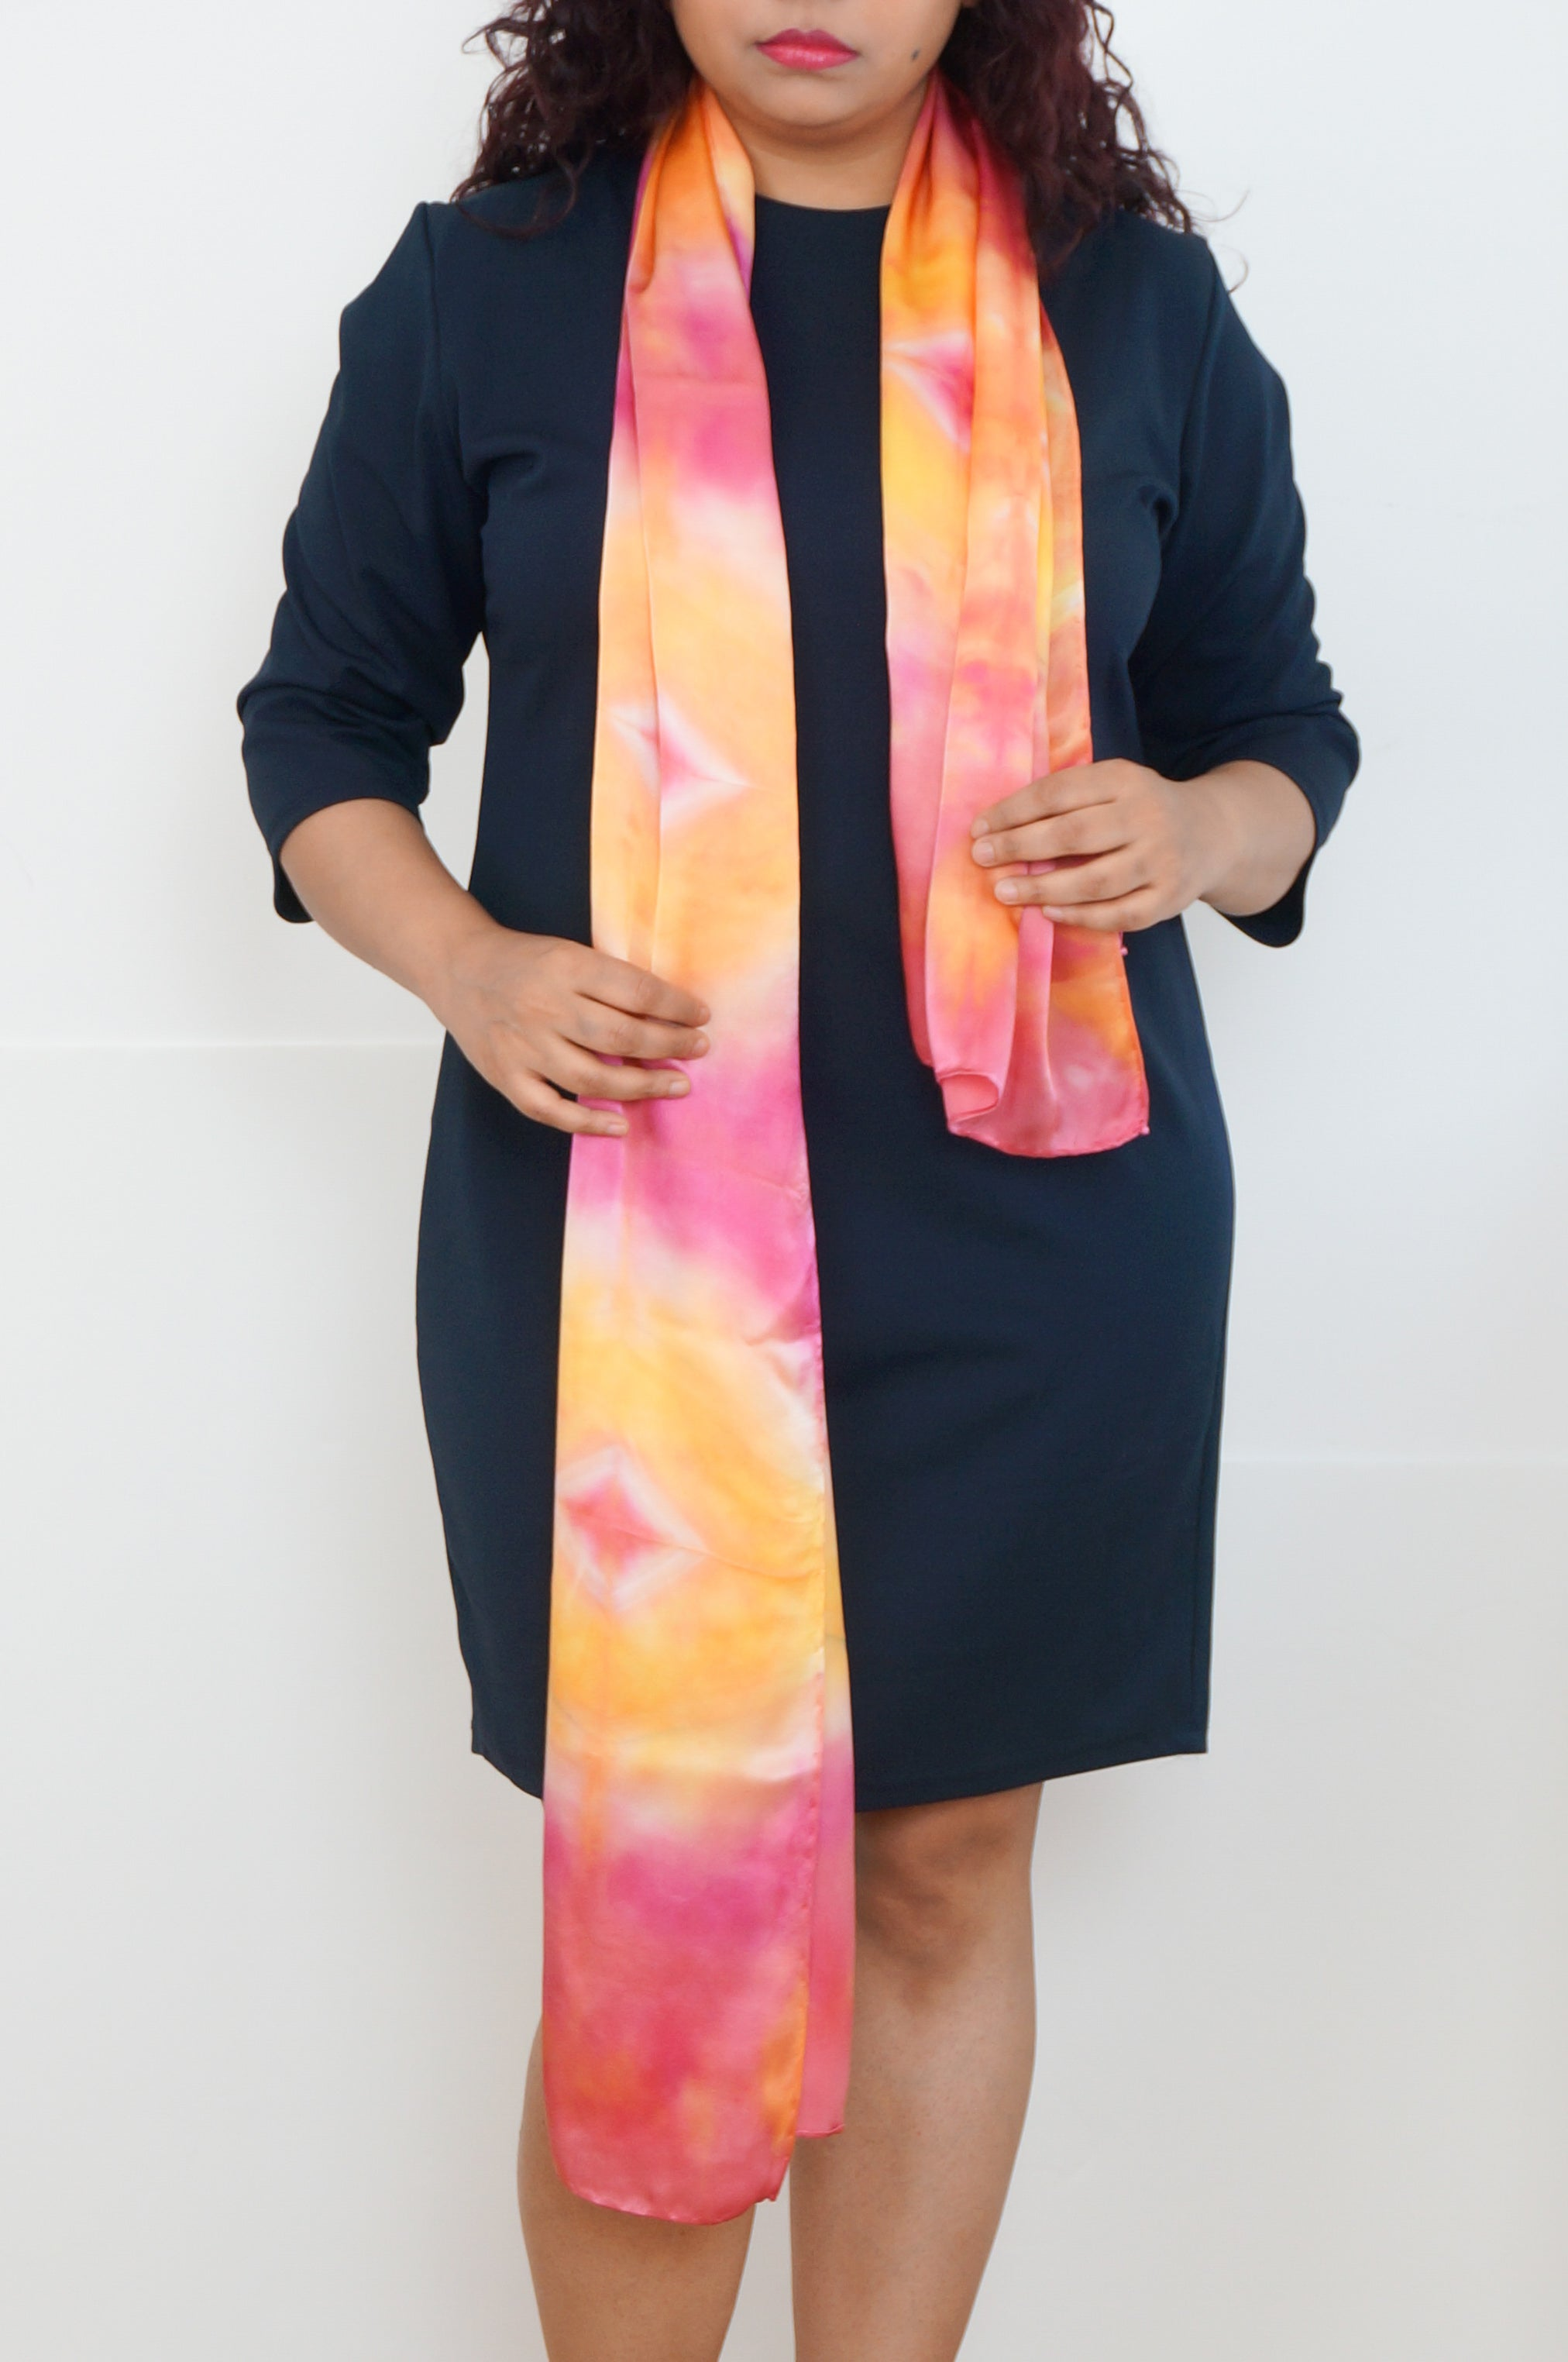 Glowing Sunset scarf